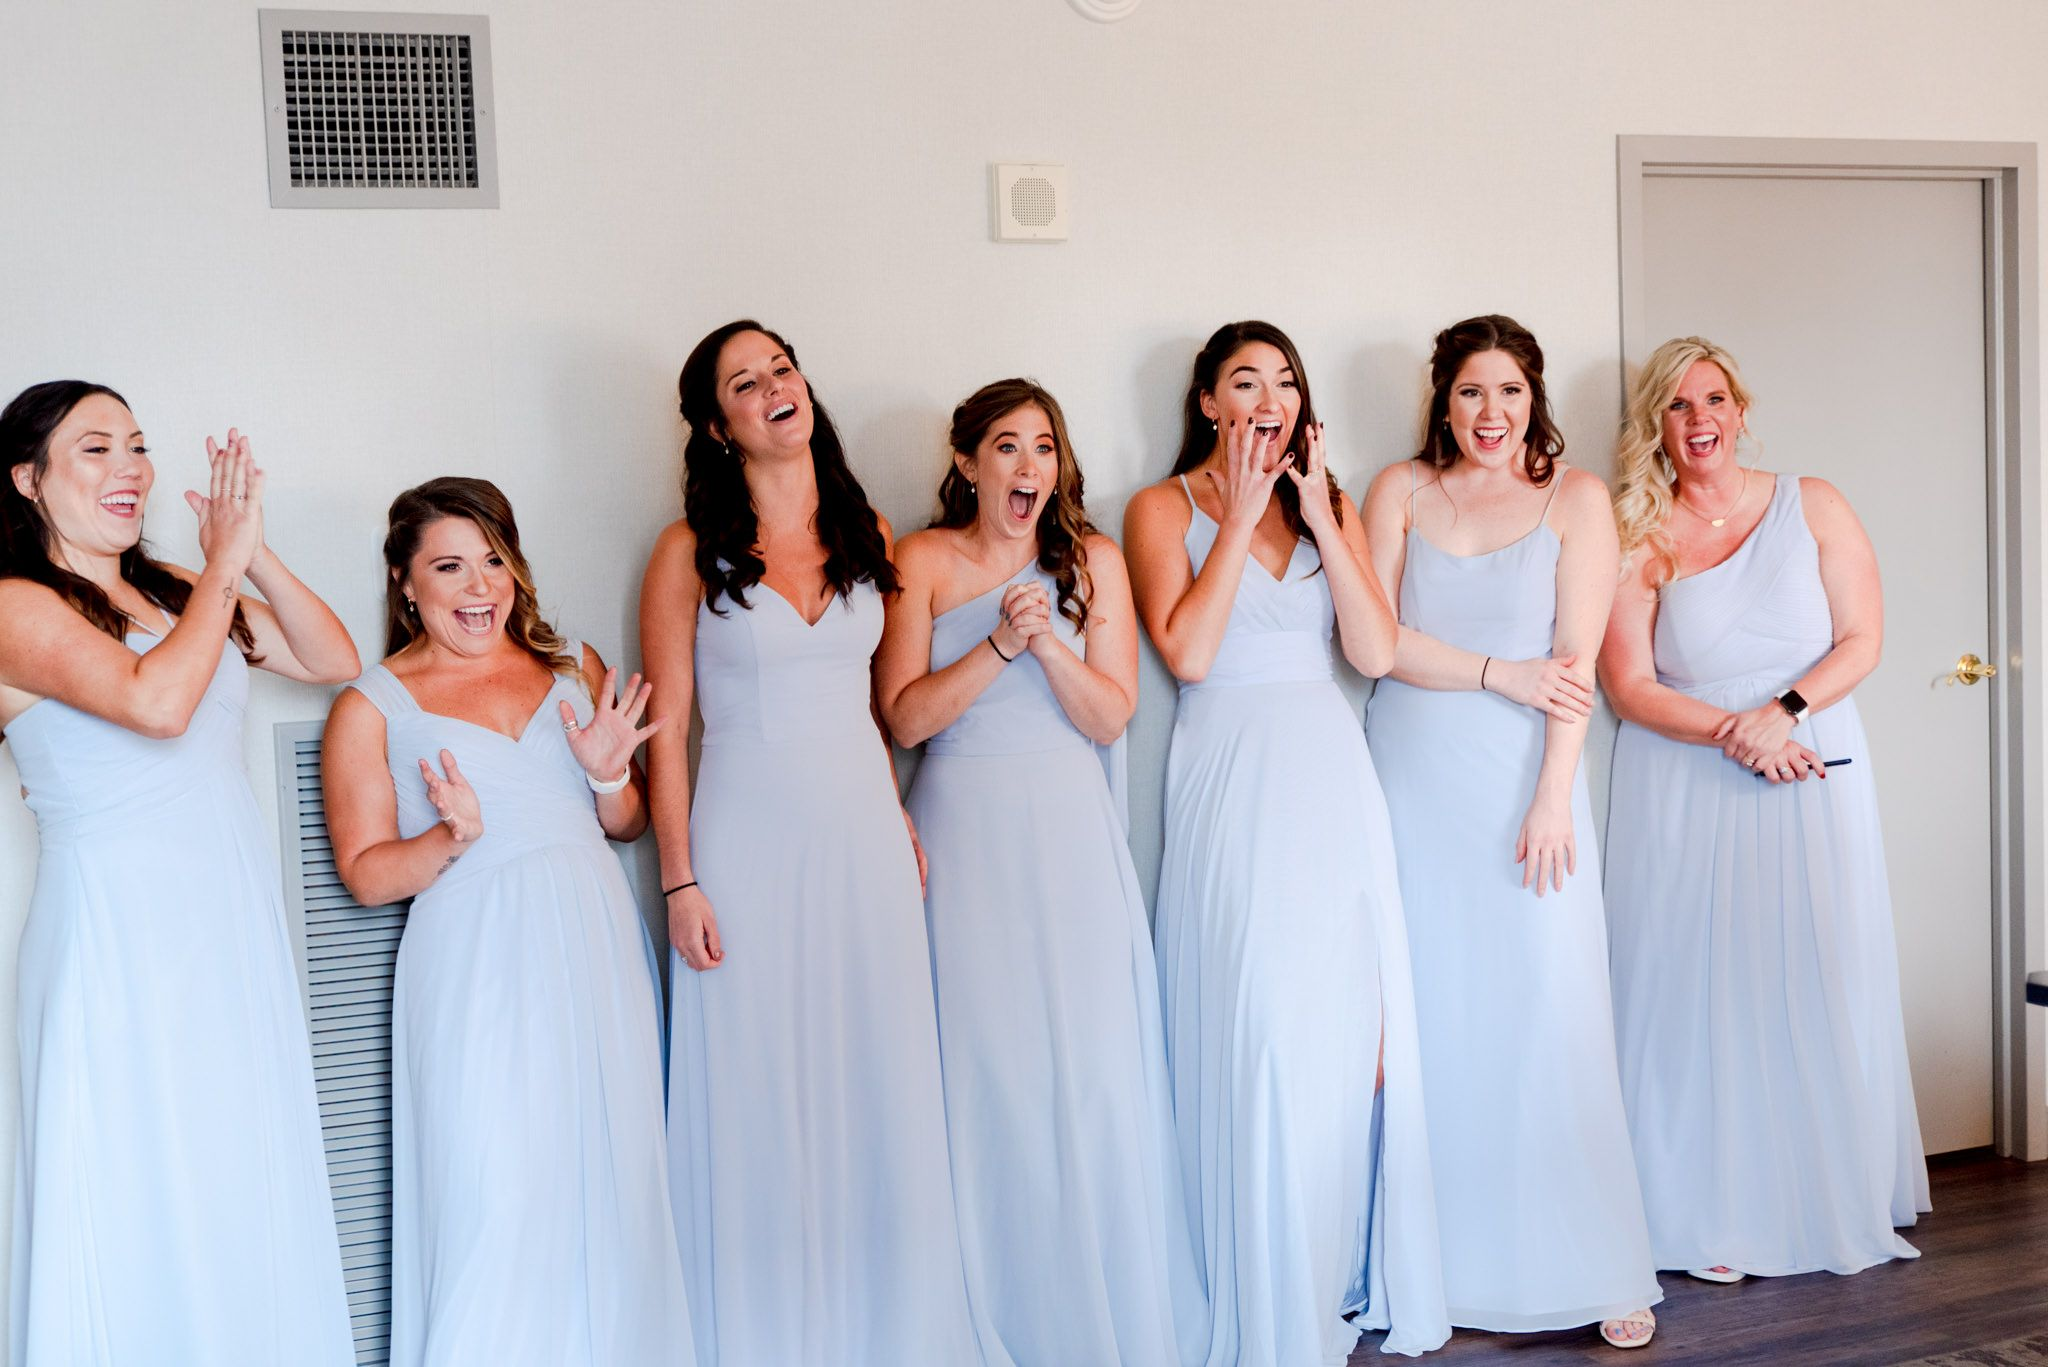 7 bridesmaids in light blue dresses smiling and clapping after seeing the bride for the first time on wedding day